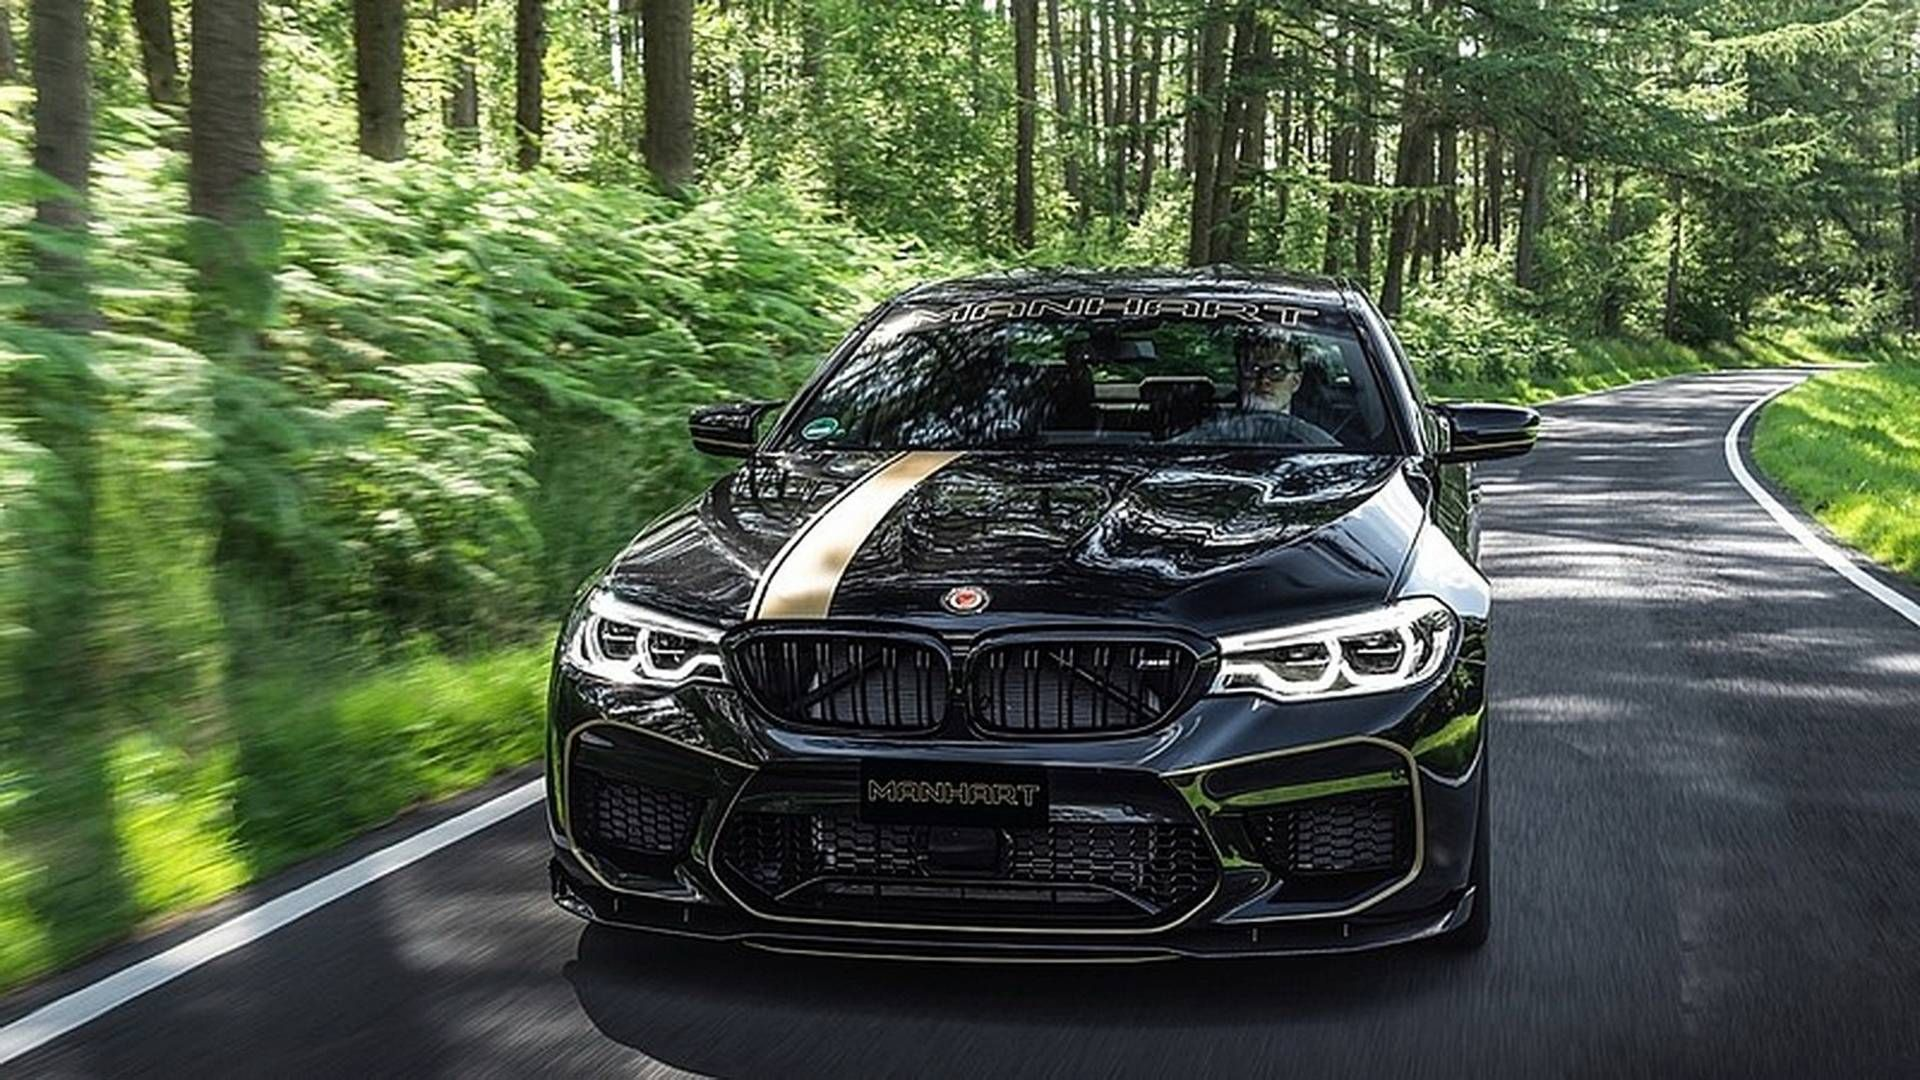 The New Manhart Mh5 700 Delivers 723 Horsepower Bmw Bmw M5 Bmw Cars Bmw m5 manhart racing mh5 700 2018